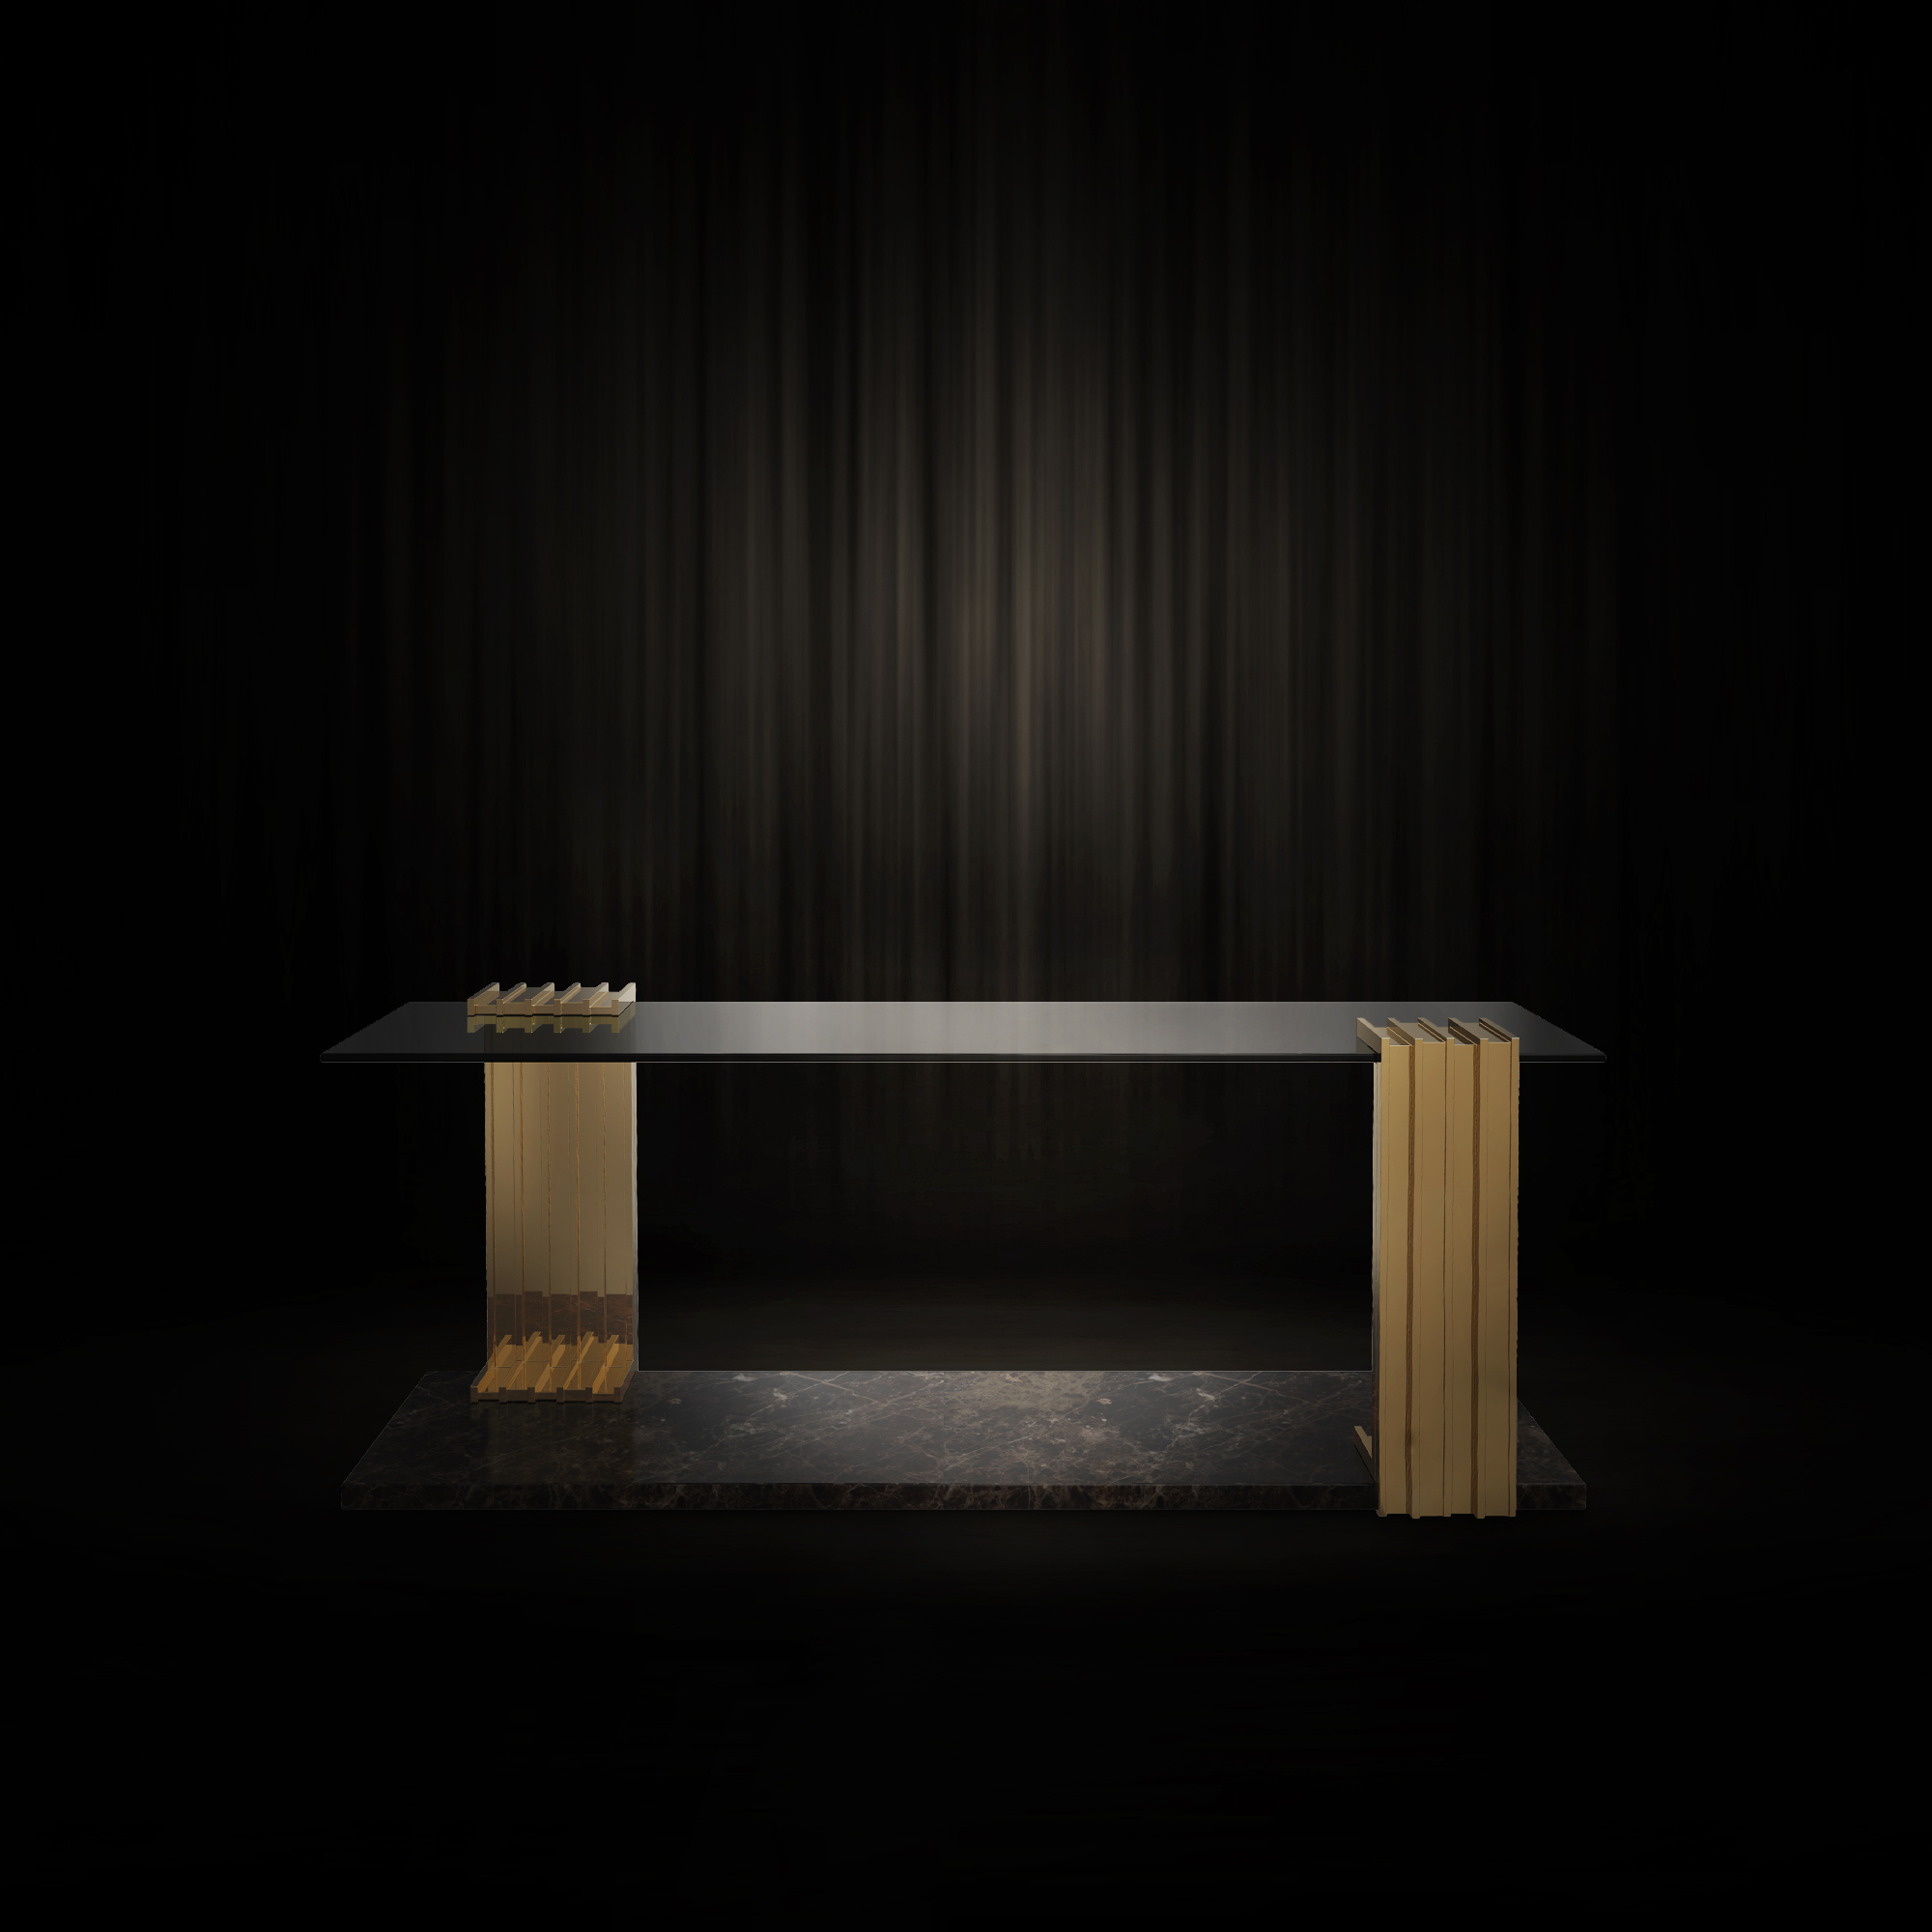 Luxury Furniture: The Compelling Vertigo Long Side Table salone del mobile milano Milan Design Guide: Top Exhibitors at Salone del Mobile Milano vertigo long salone del mobile milano Milan Design Guide: Top Exhibitors at Salone del Mobile Milano vertigo long